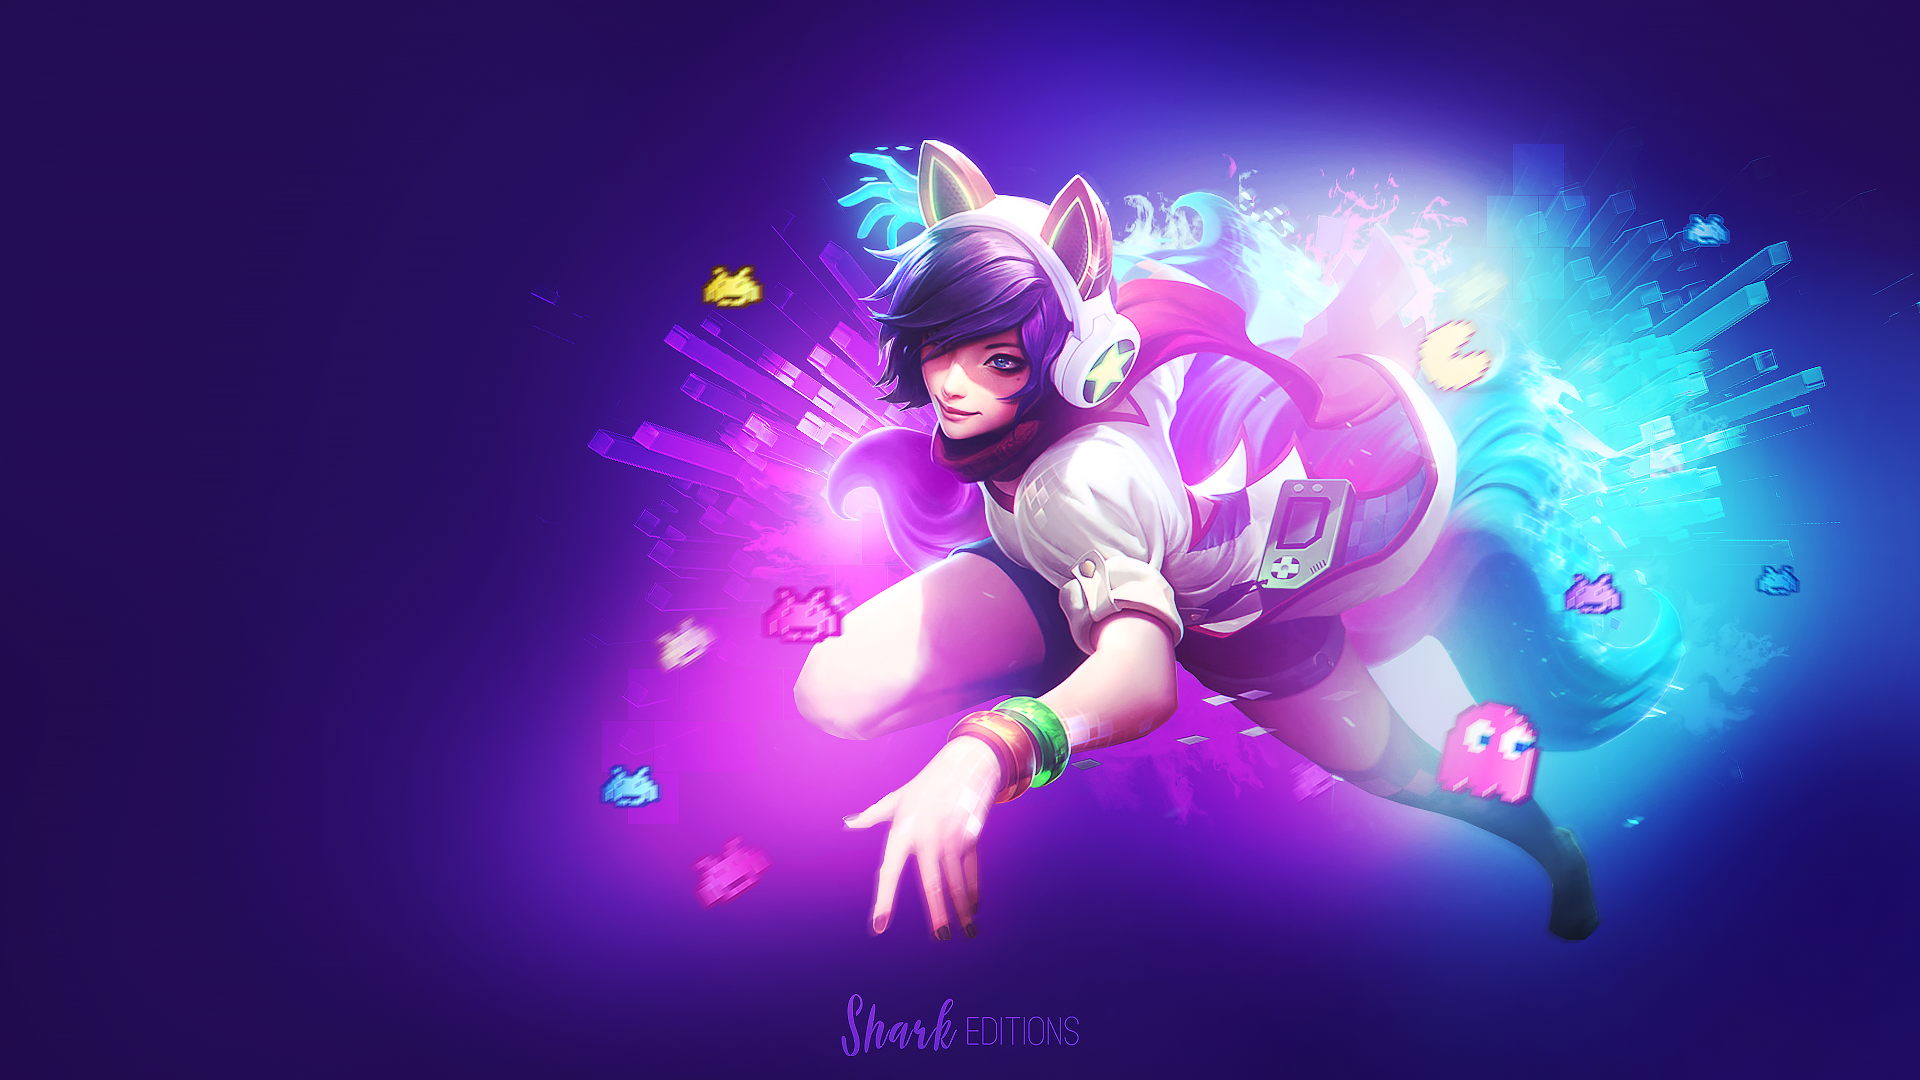 Arcade Game Wallpaper Group With 57 Items: Arcade Ahri Wallpaper By LeftLucy On DeviantArt